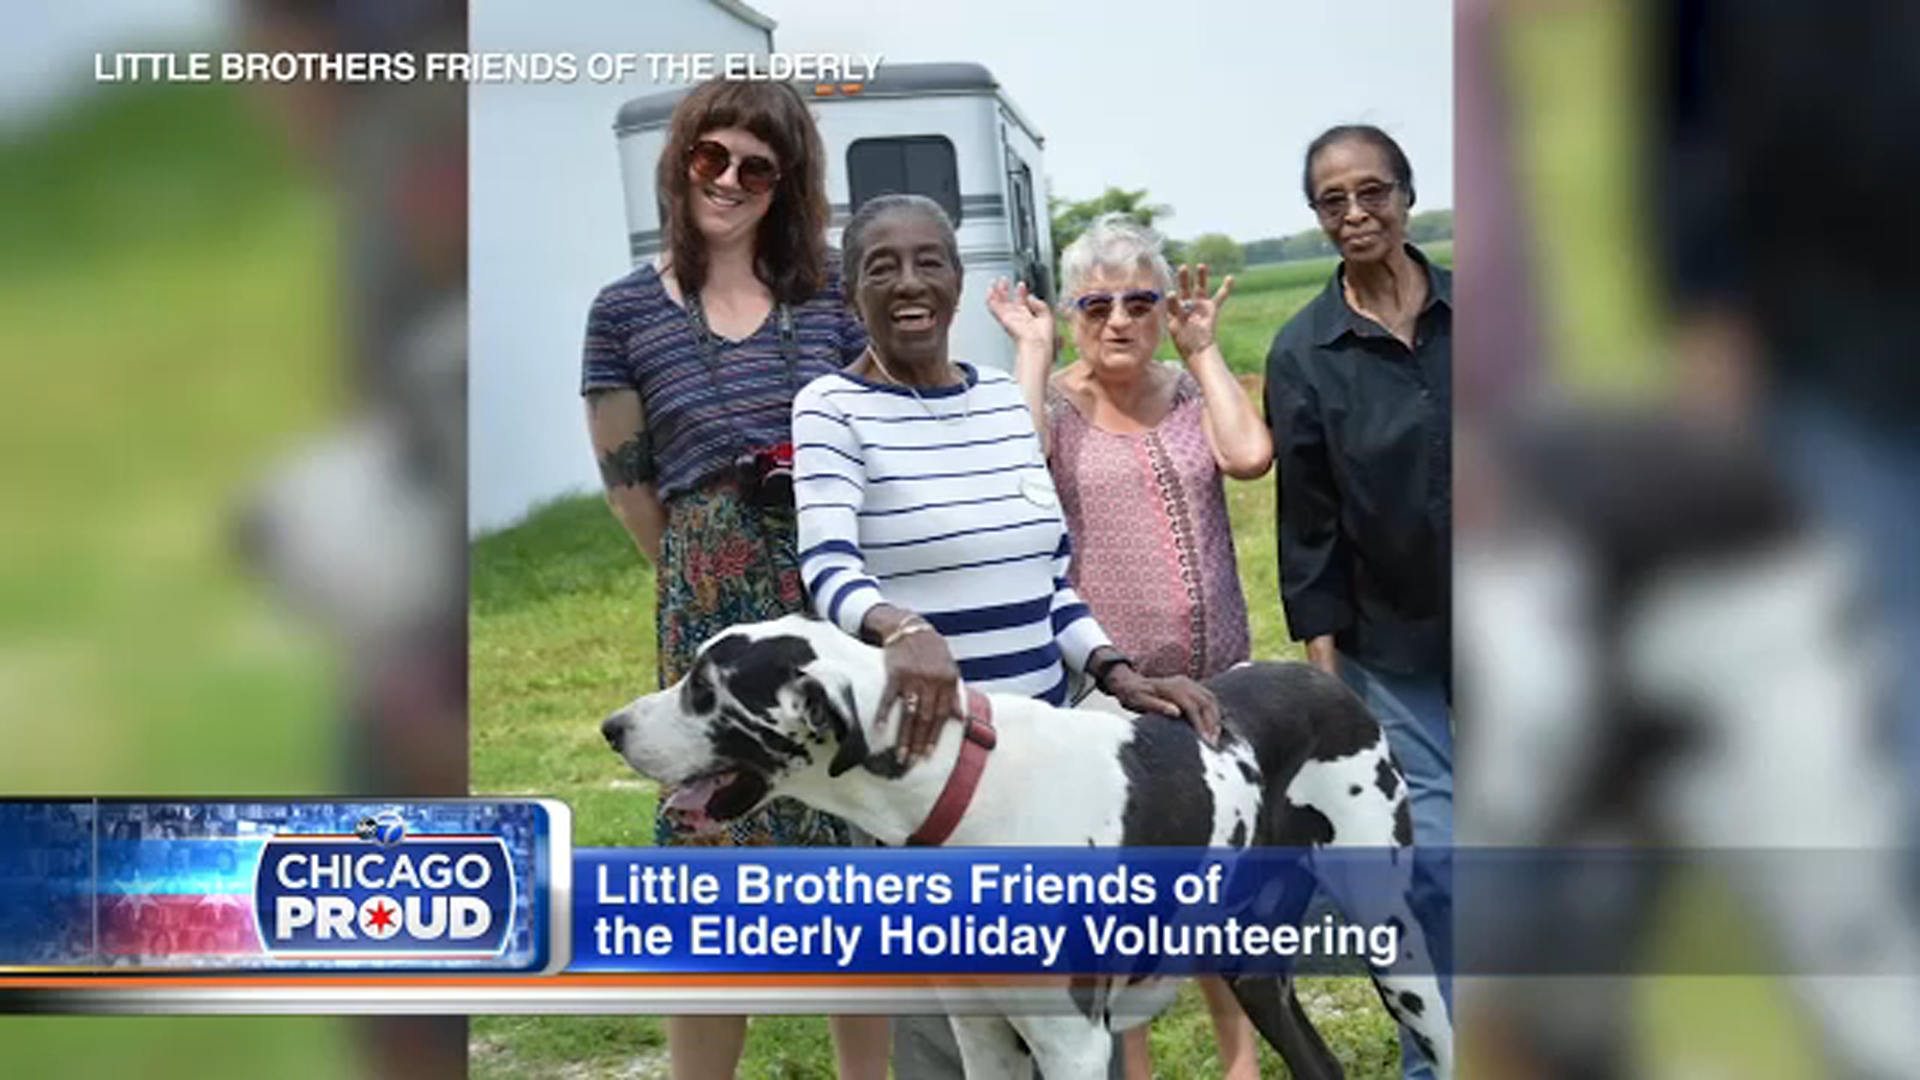 Little Brothers - Friends of the Elderly brings joy to the lives of senior citizens who may otherwise be living in isolation.